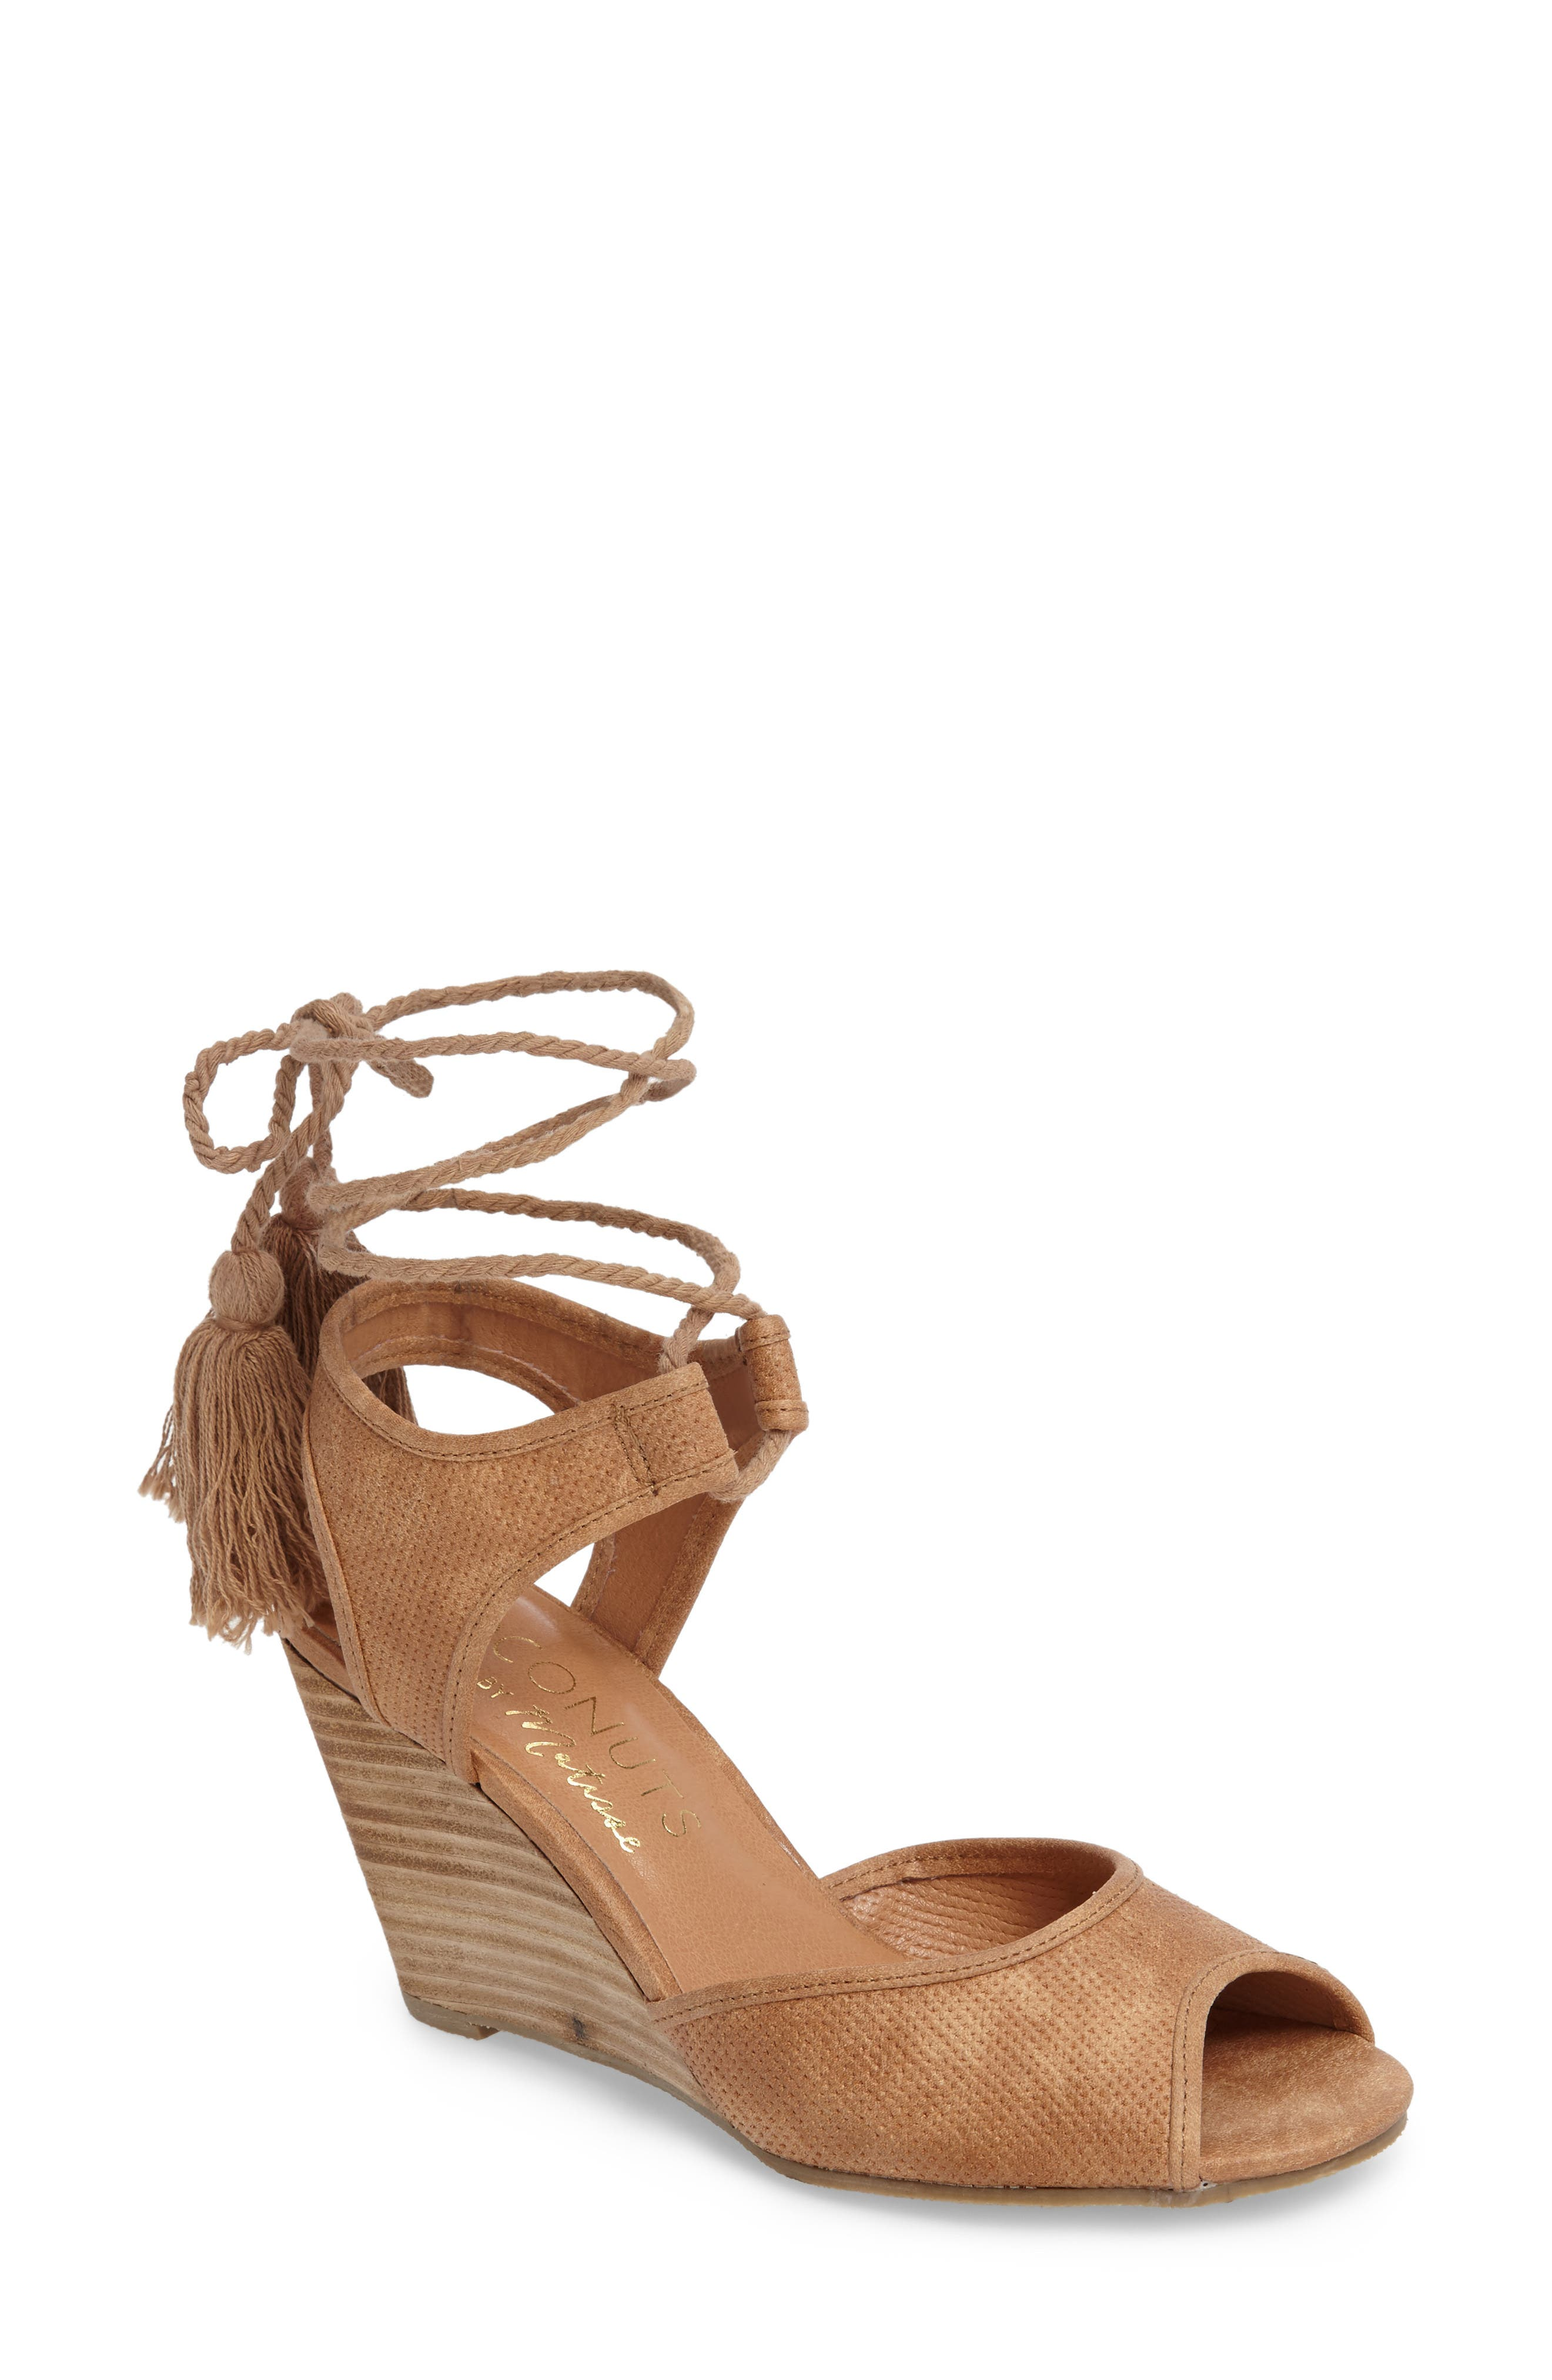 Alternate Image 1 Selected - Coconuts by Matisse Unify Wedge Sandal (Women)